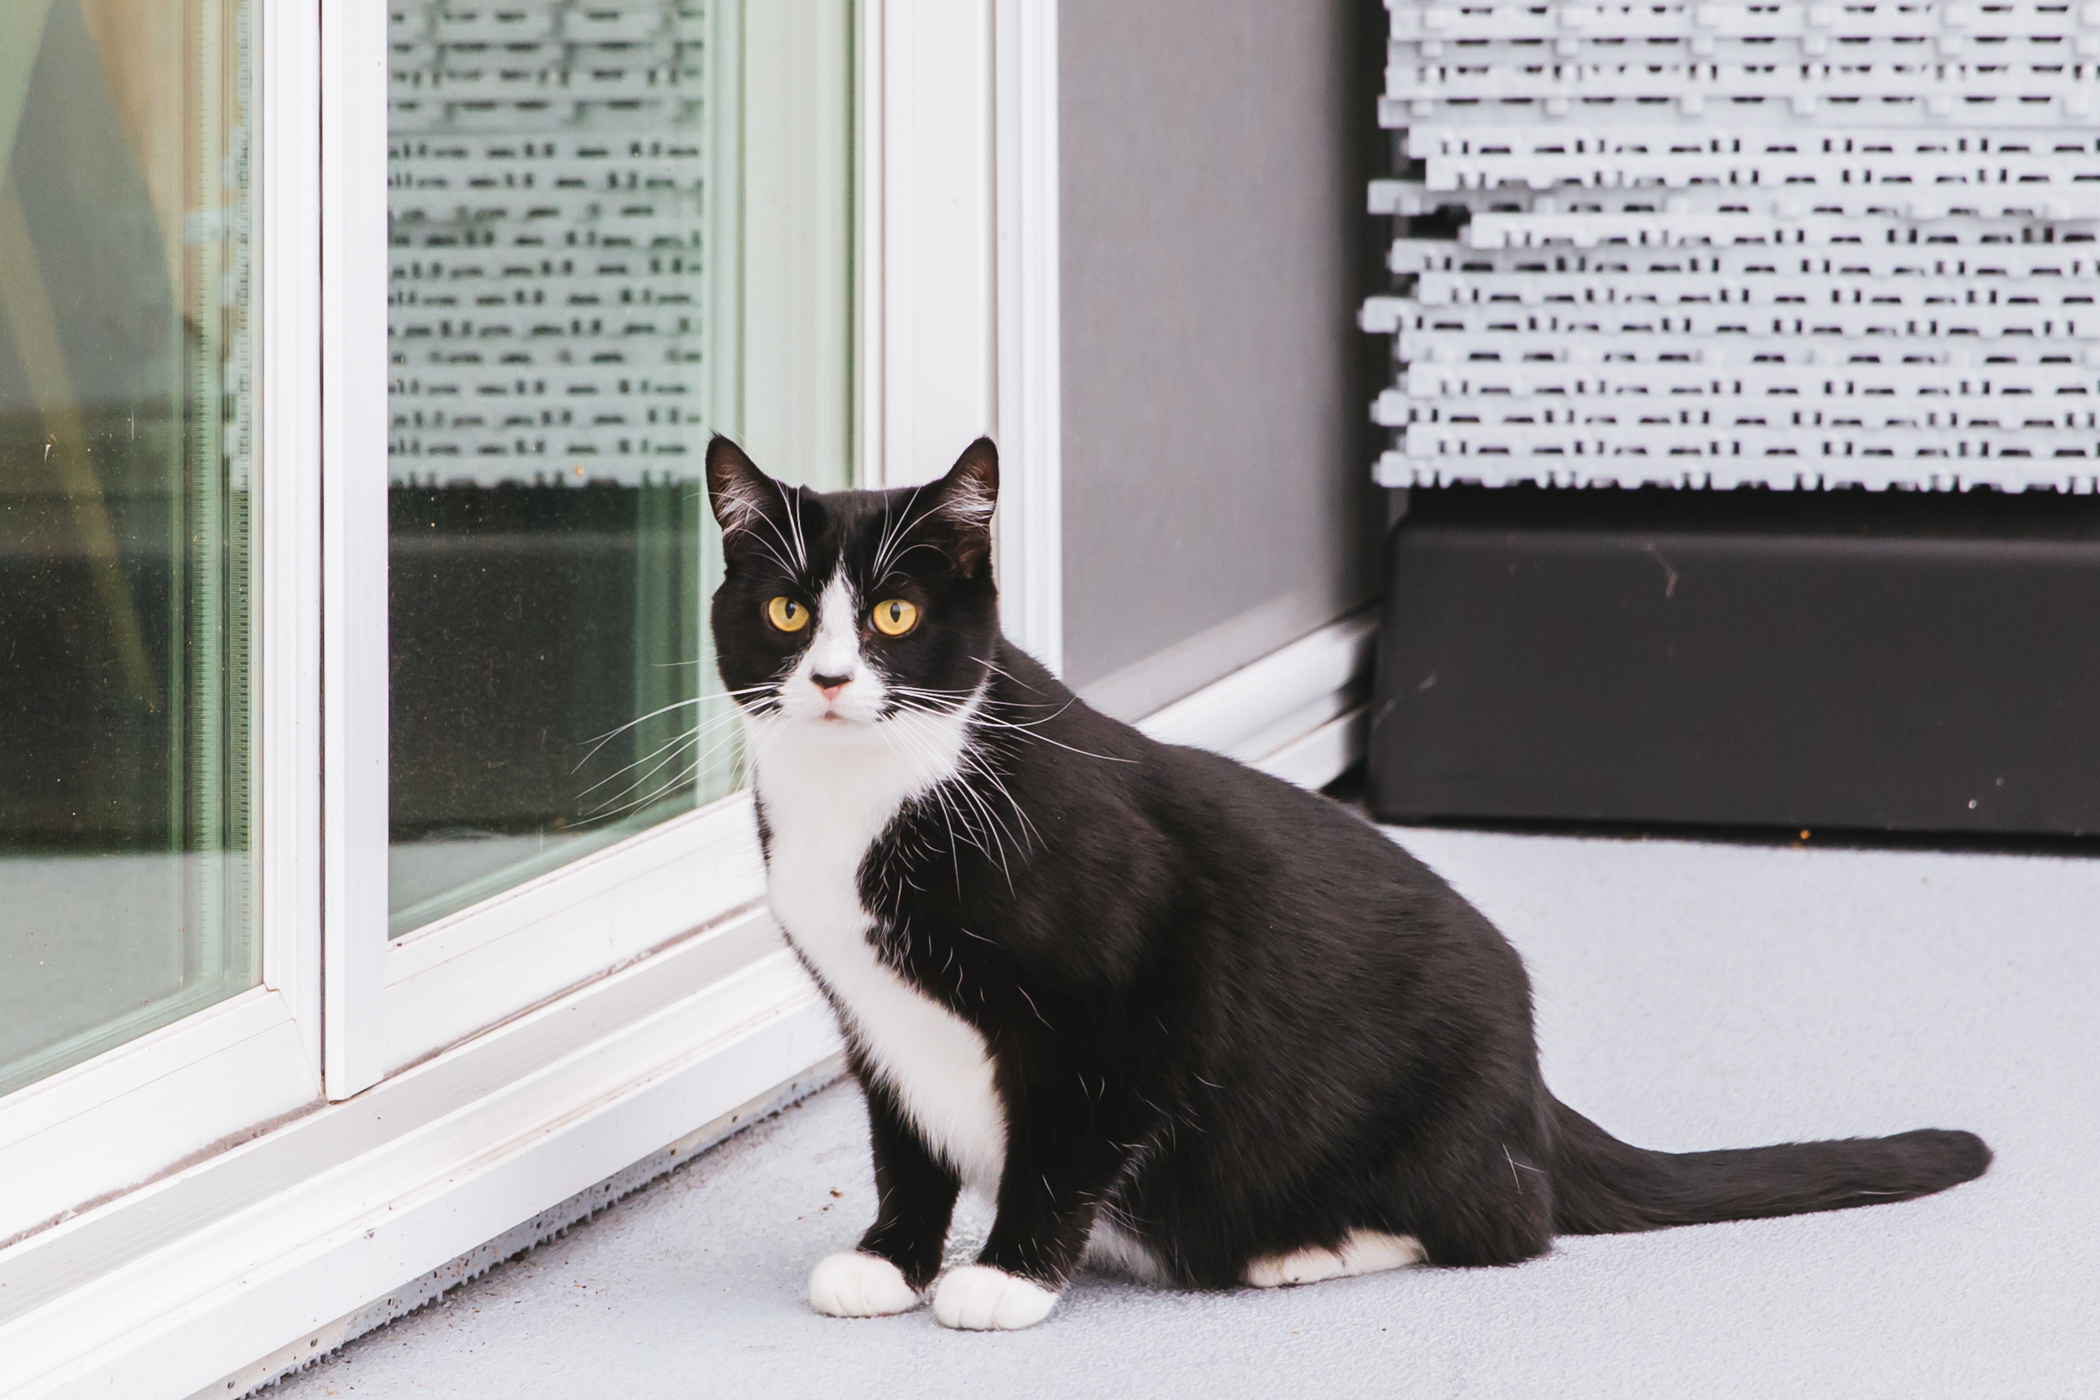 "Miss Dottie is a 6-year-old black and white tuxedo rescue, who loves to play fetch, get brushed and attention but ONLY on her terms. She hates being left alone, and having her meals served late..{&nbsp;}<a  href=""http://seattlerefined.com/ruffined"" target=""_blank"" title=""http://seattlerefined.com/ruffined"">The RUFFined Spotlight</a>{&nbsp;}is a weekly profile of local pets living and loving life in the PNW. If you or someone you know has a pet you'd like featured, email us at{&nbsp;}<a  href=""mailto:hello@seattlerefined.com"" target=""_blank"" title=""mailto:hello@seattlerefined.com"">hello@seattlerefined.com</a>, and your furbaby could be the next spotlighted! (Image: Sunita Martini / Seattle Refined)"